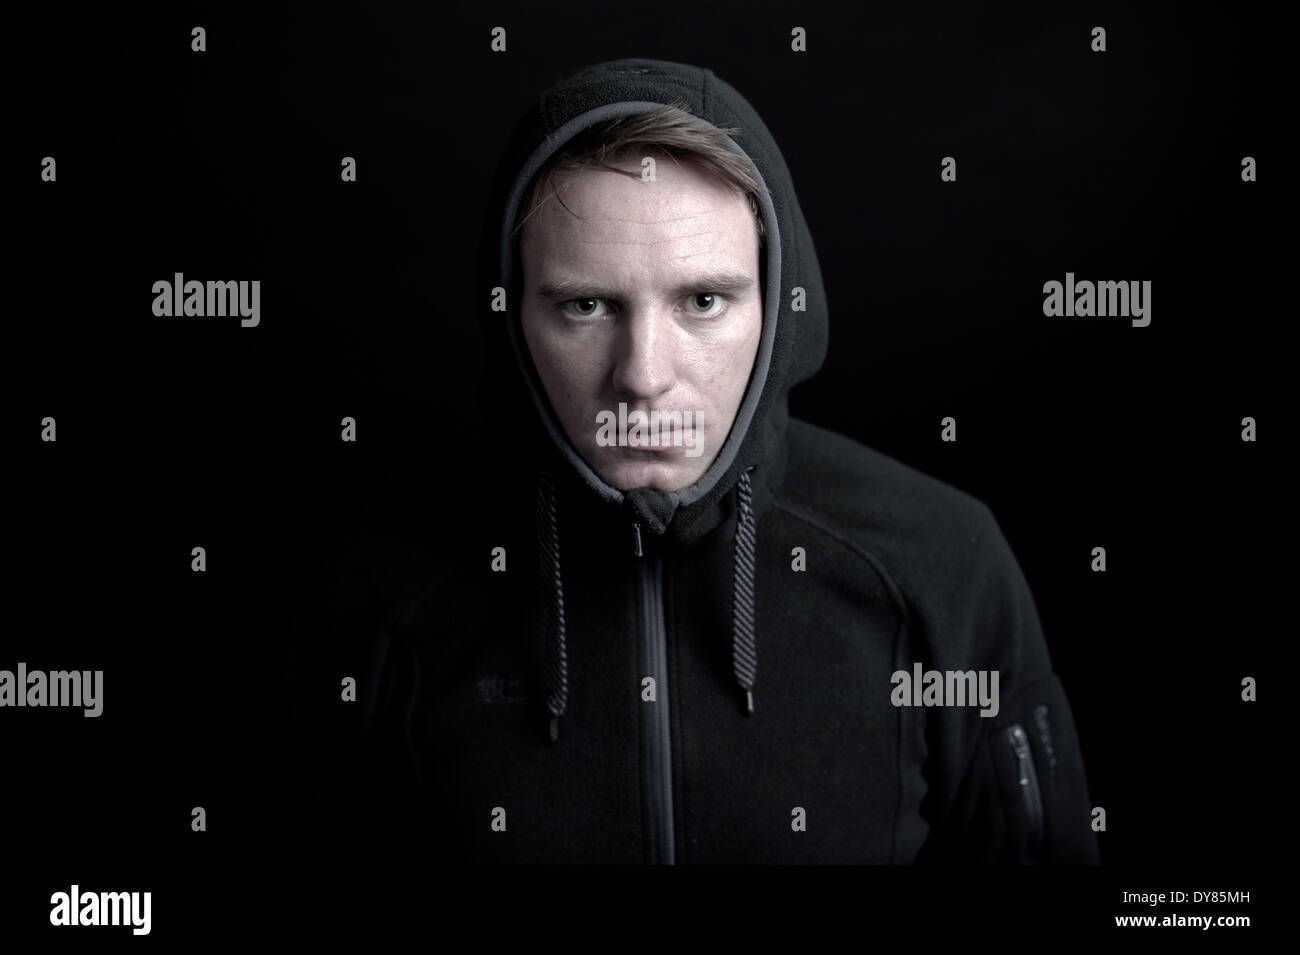 Young man with hood - Stock Image